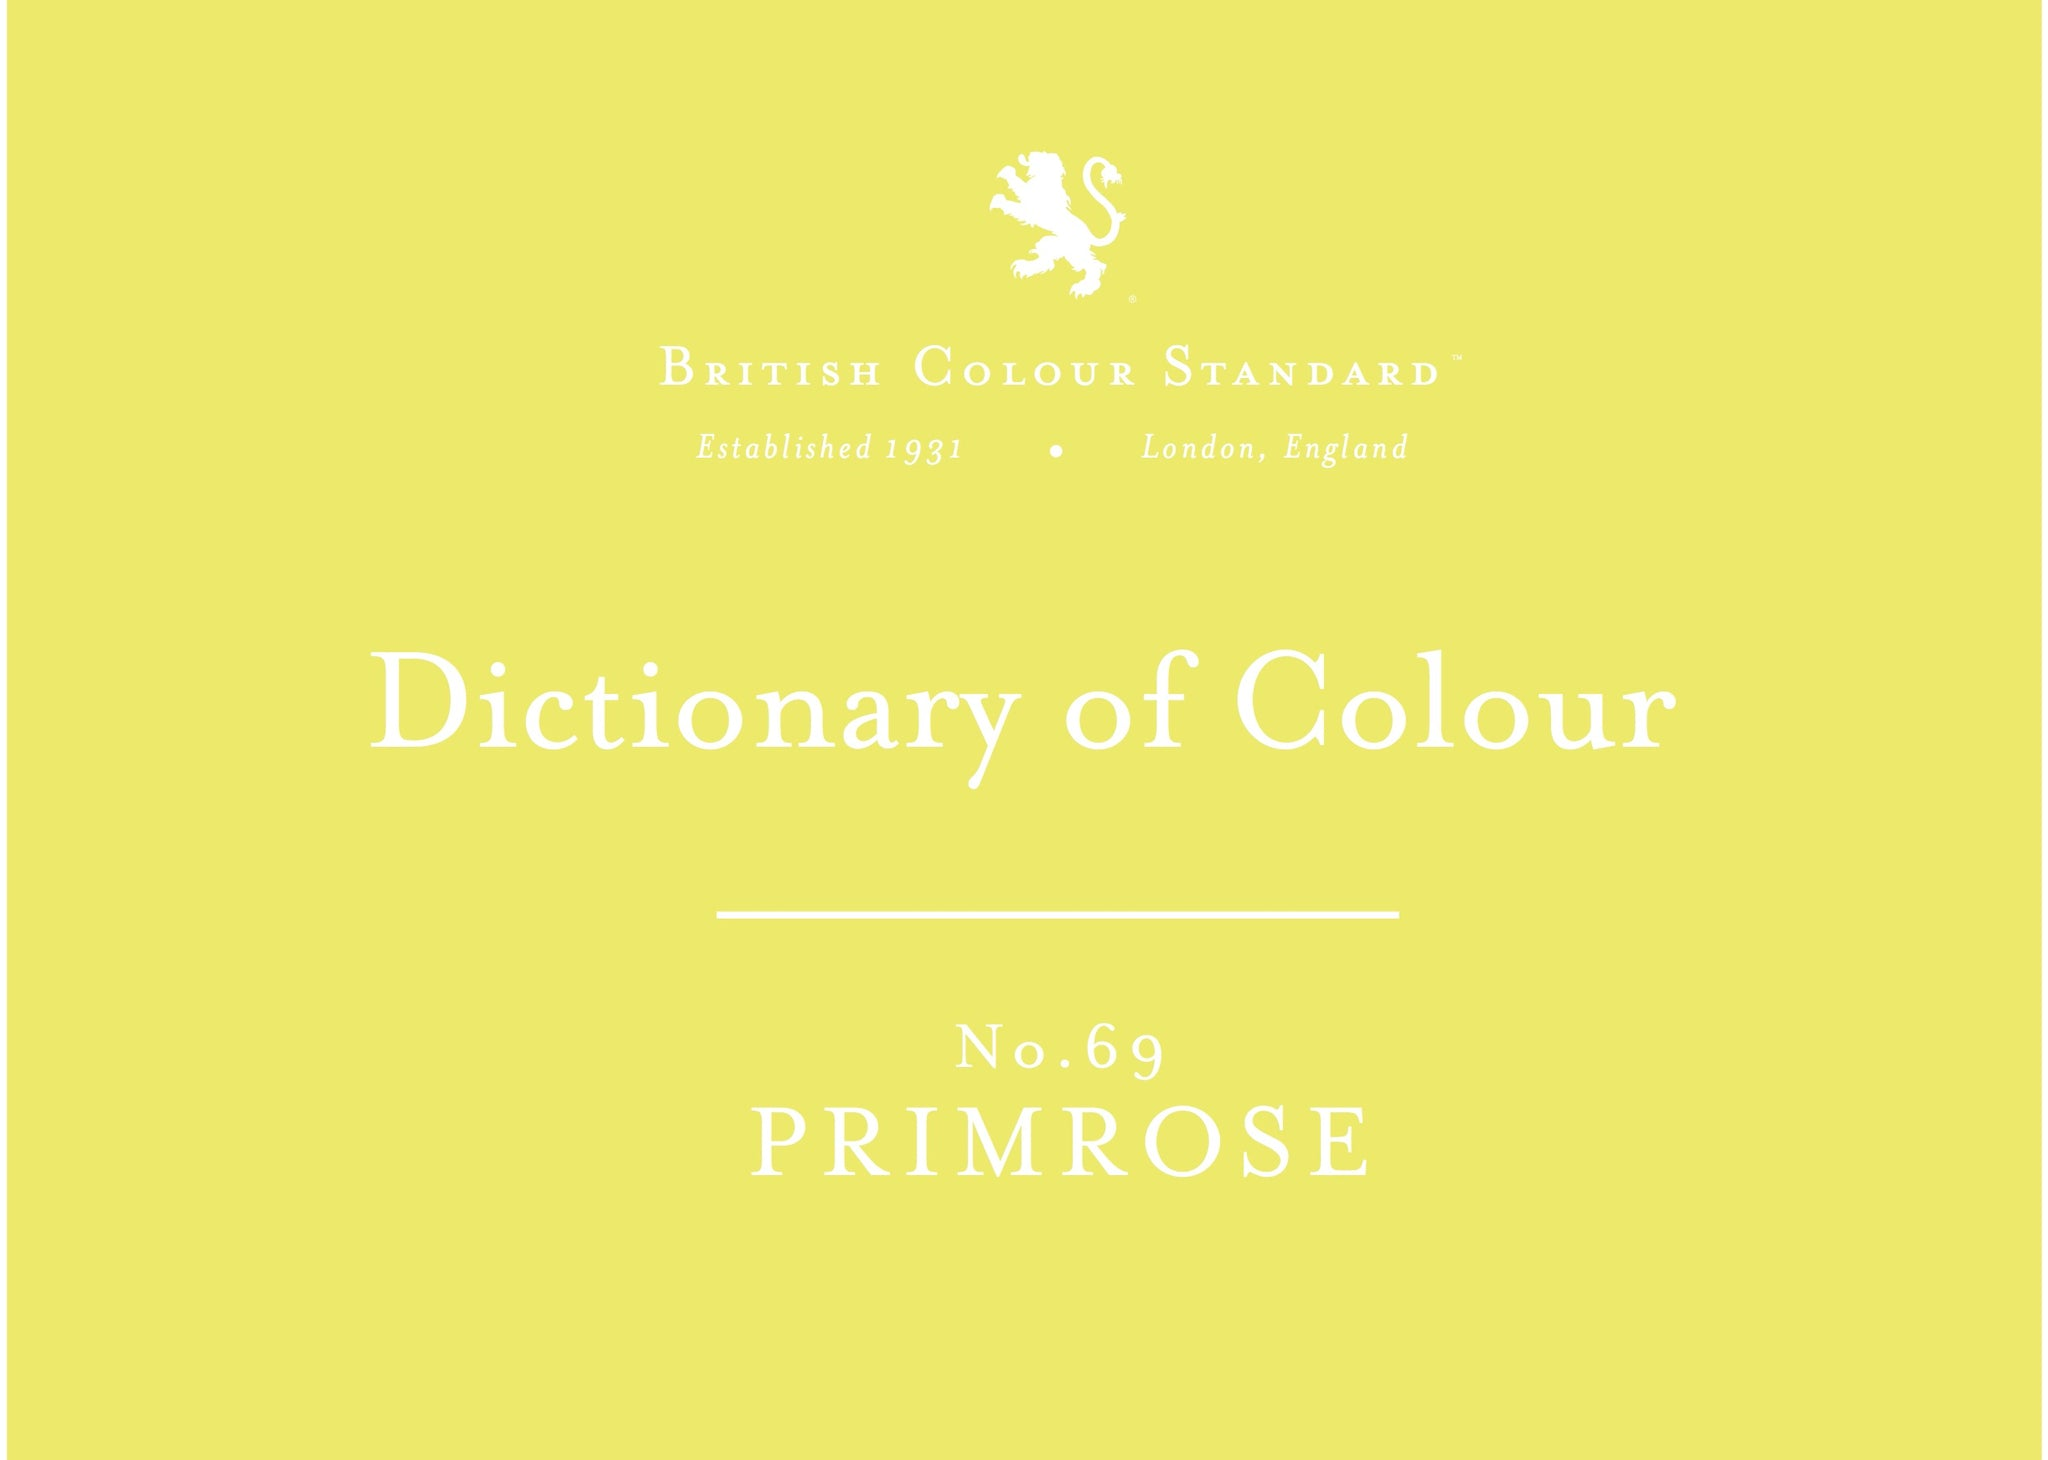 BRITISH COLOUR STANDARD - Primrose No. 69